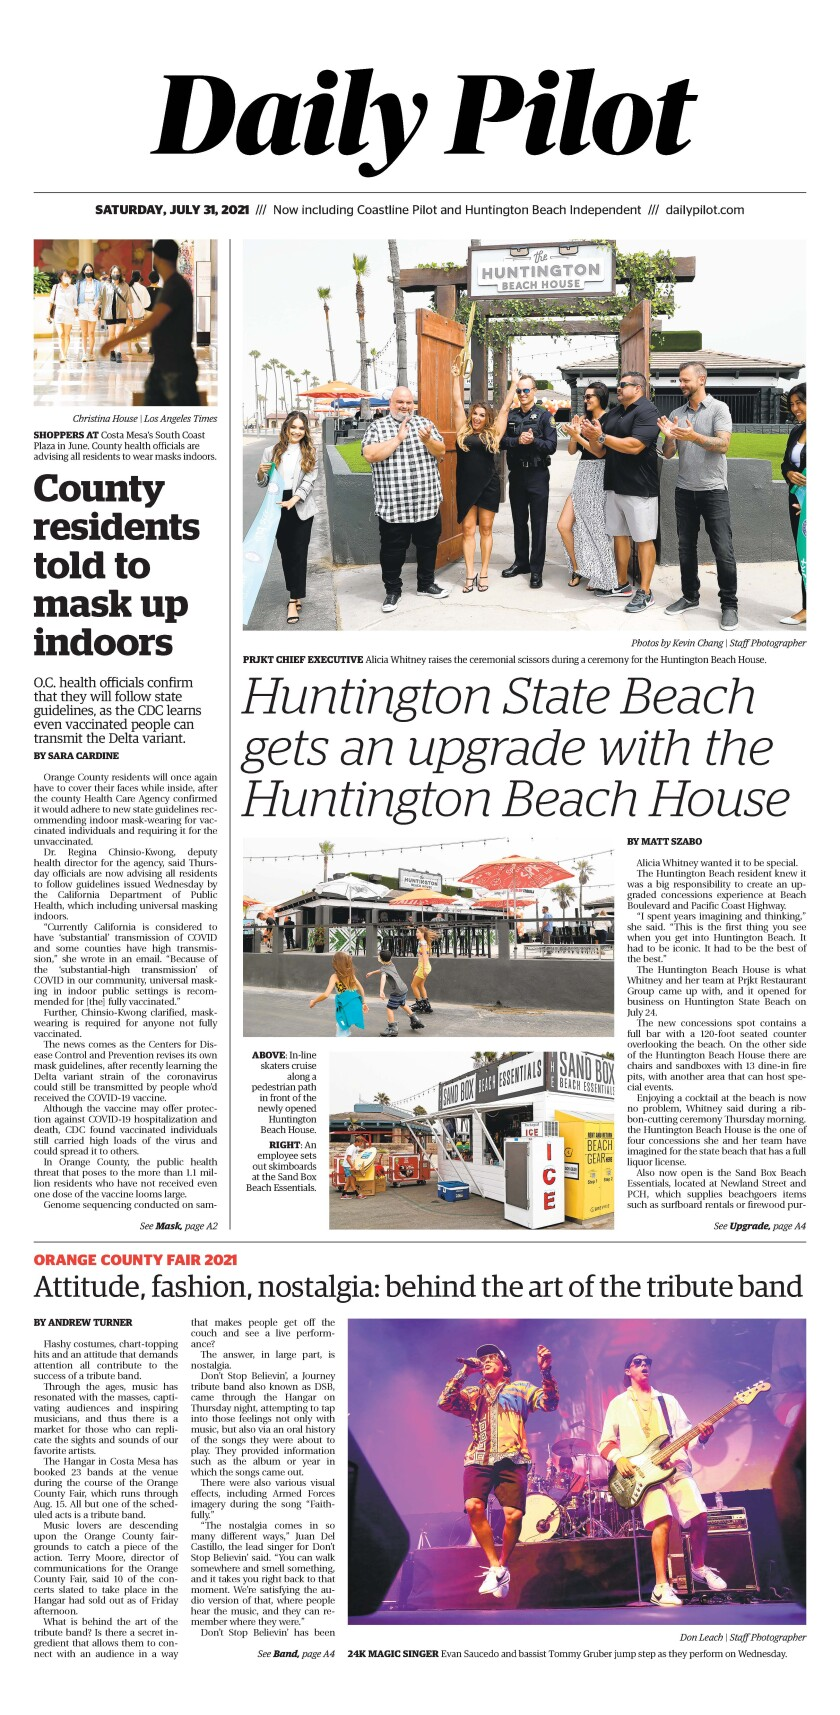 Front page of Daily Pilot e-newspaper for Saturday, July 31, 2021.